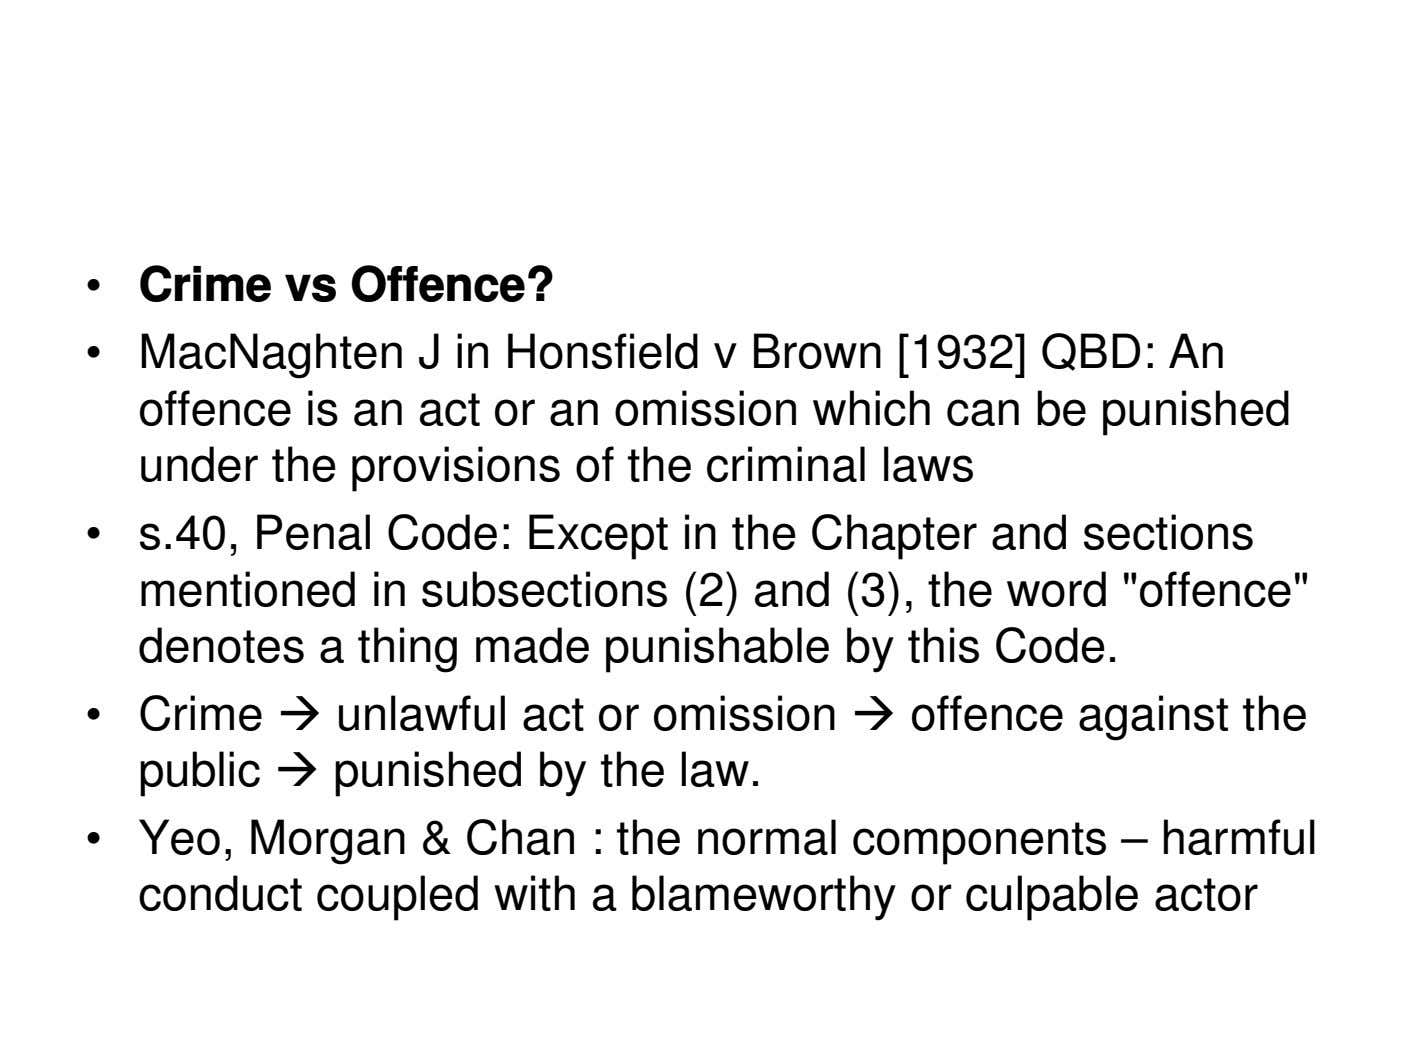 • Crime vs Offence? • MacNaghten J in Honsfield v Brown [1932] QBD: An offence